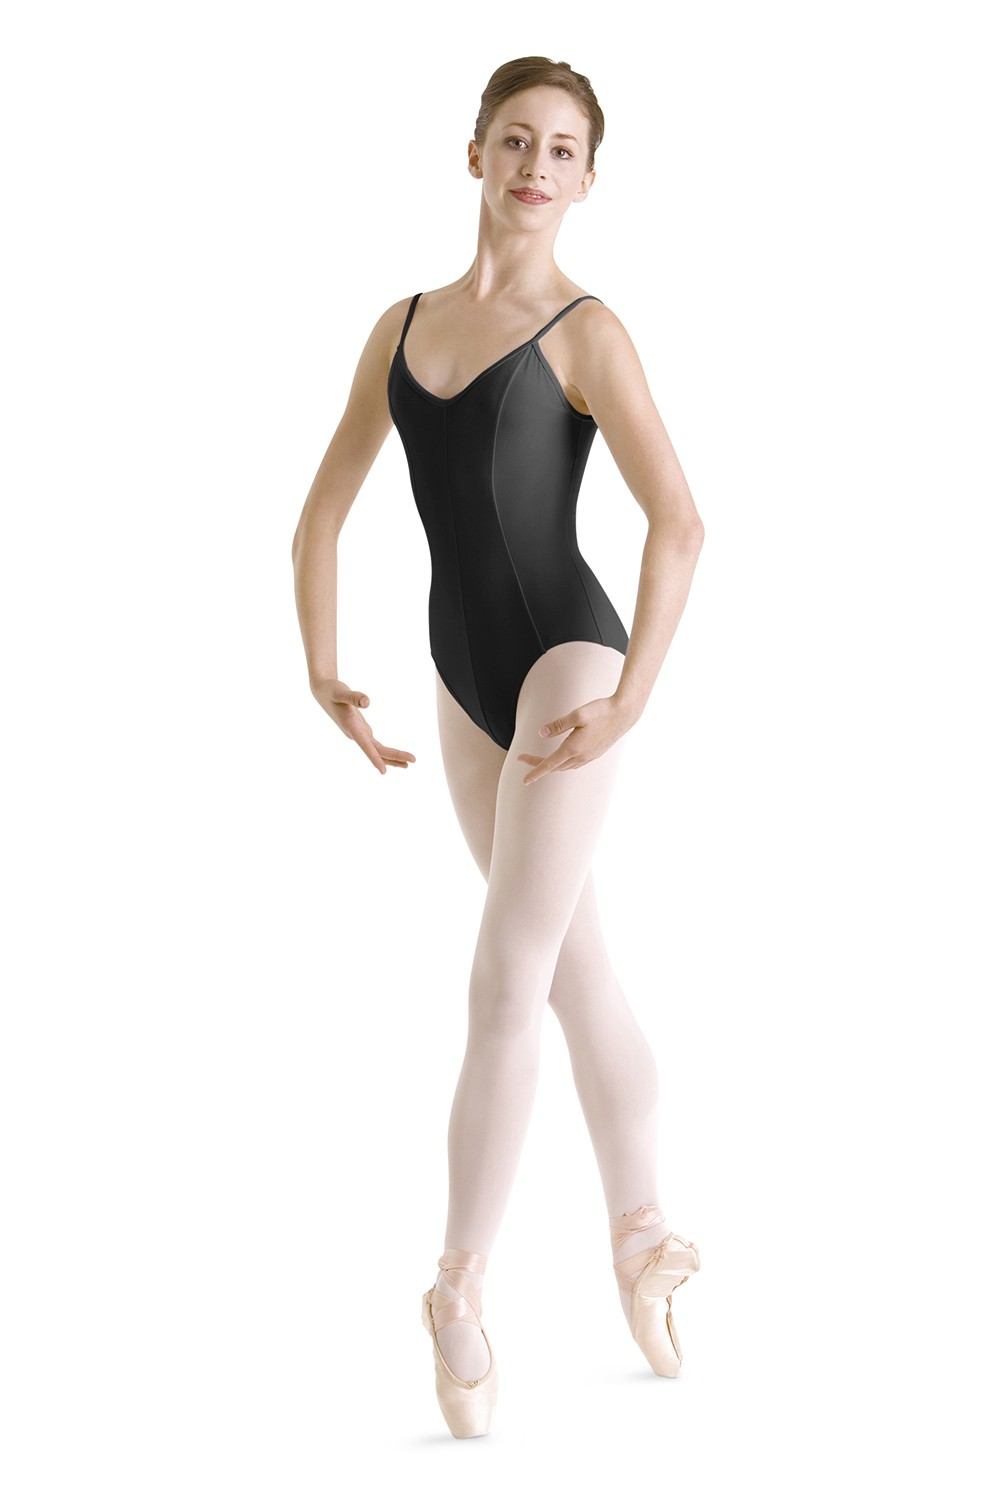 Camisola Con Escote En V Y Costuras Princesa Women's Dance Leotards